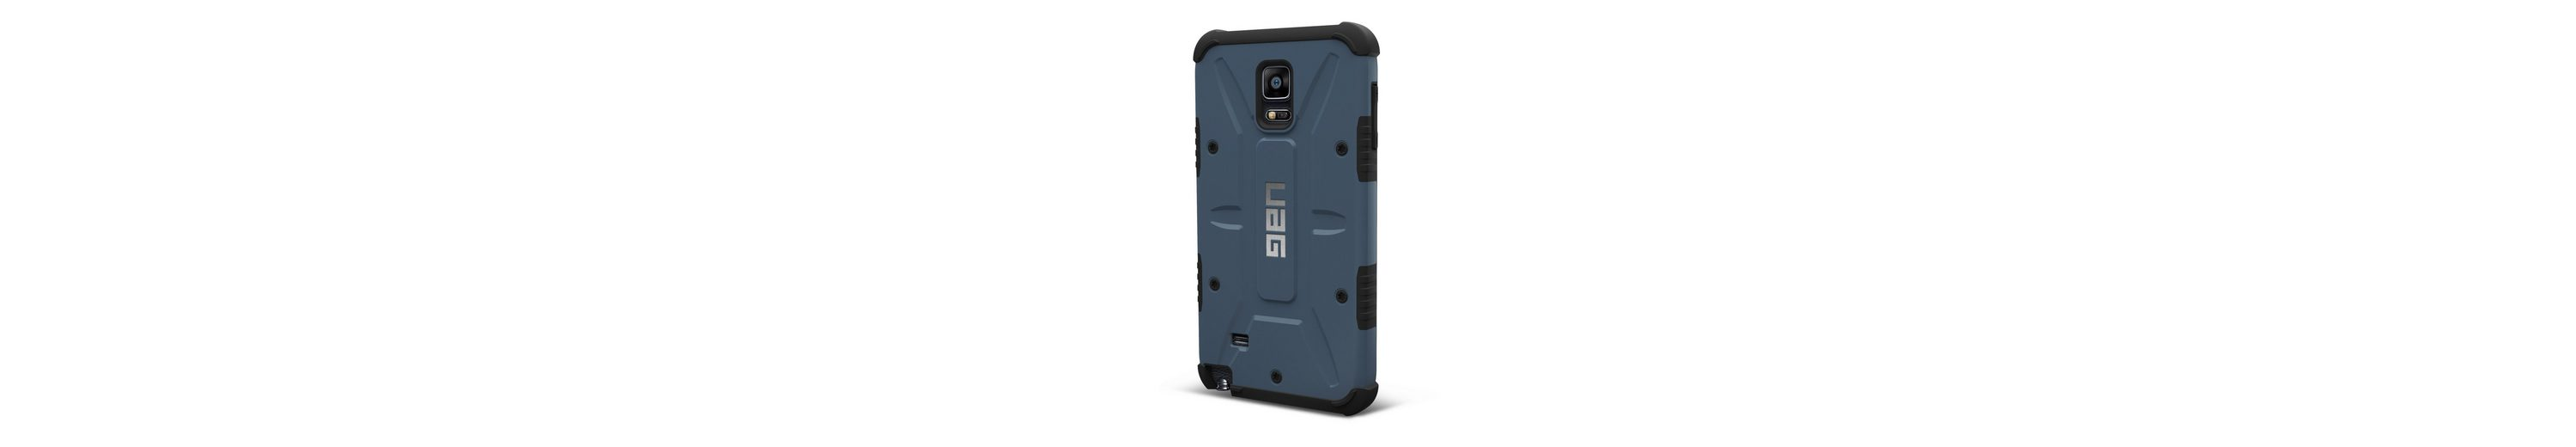 UAG Hartschale für Samsung Galaxy Note 4 »Composite Case«